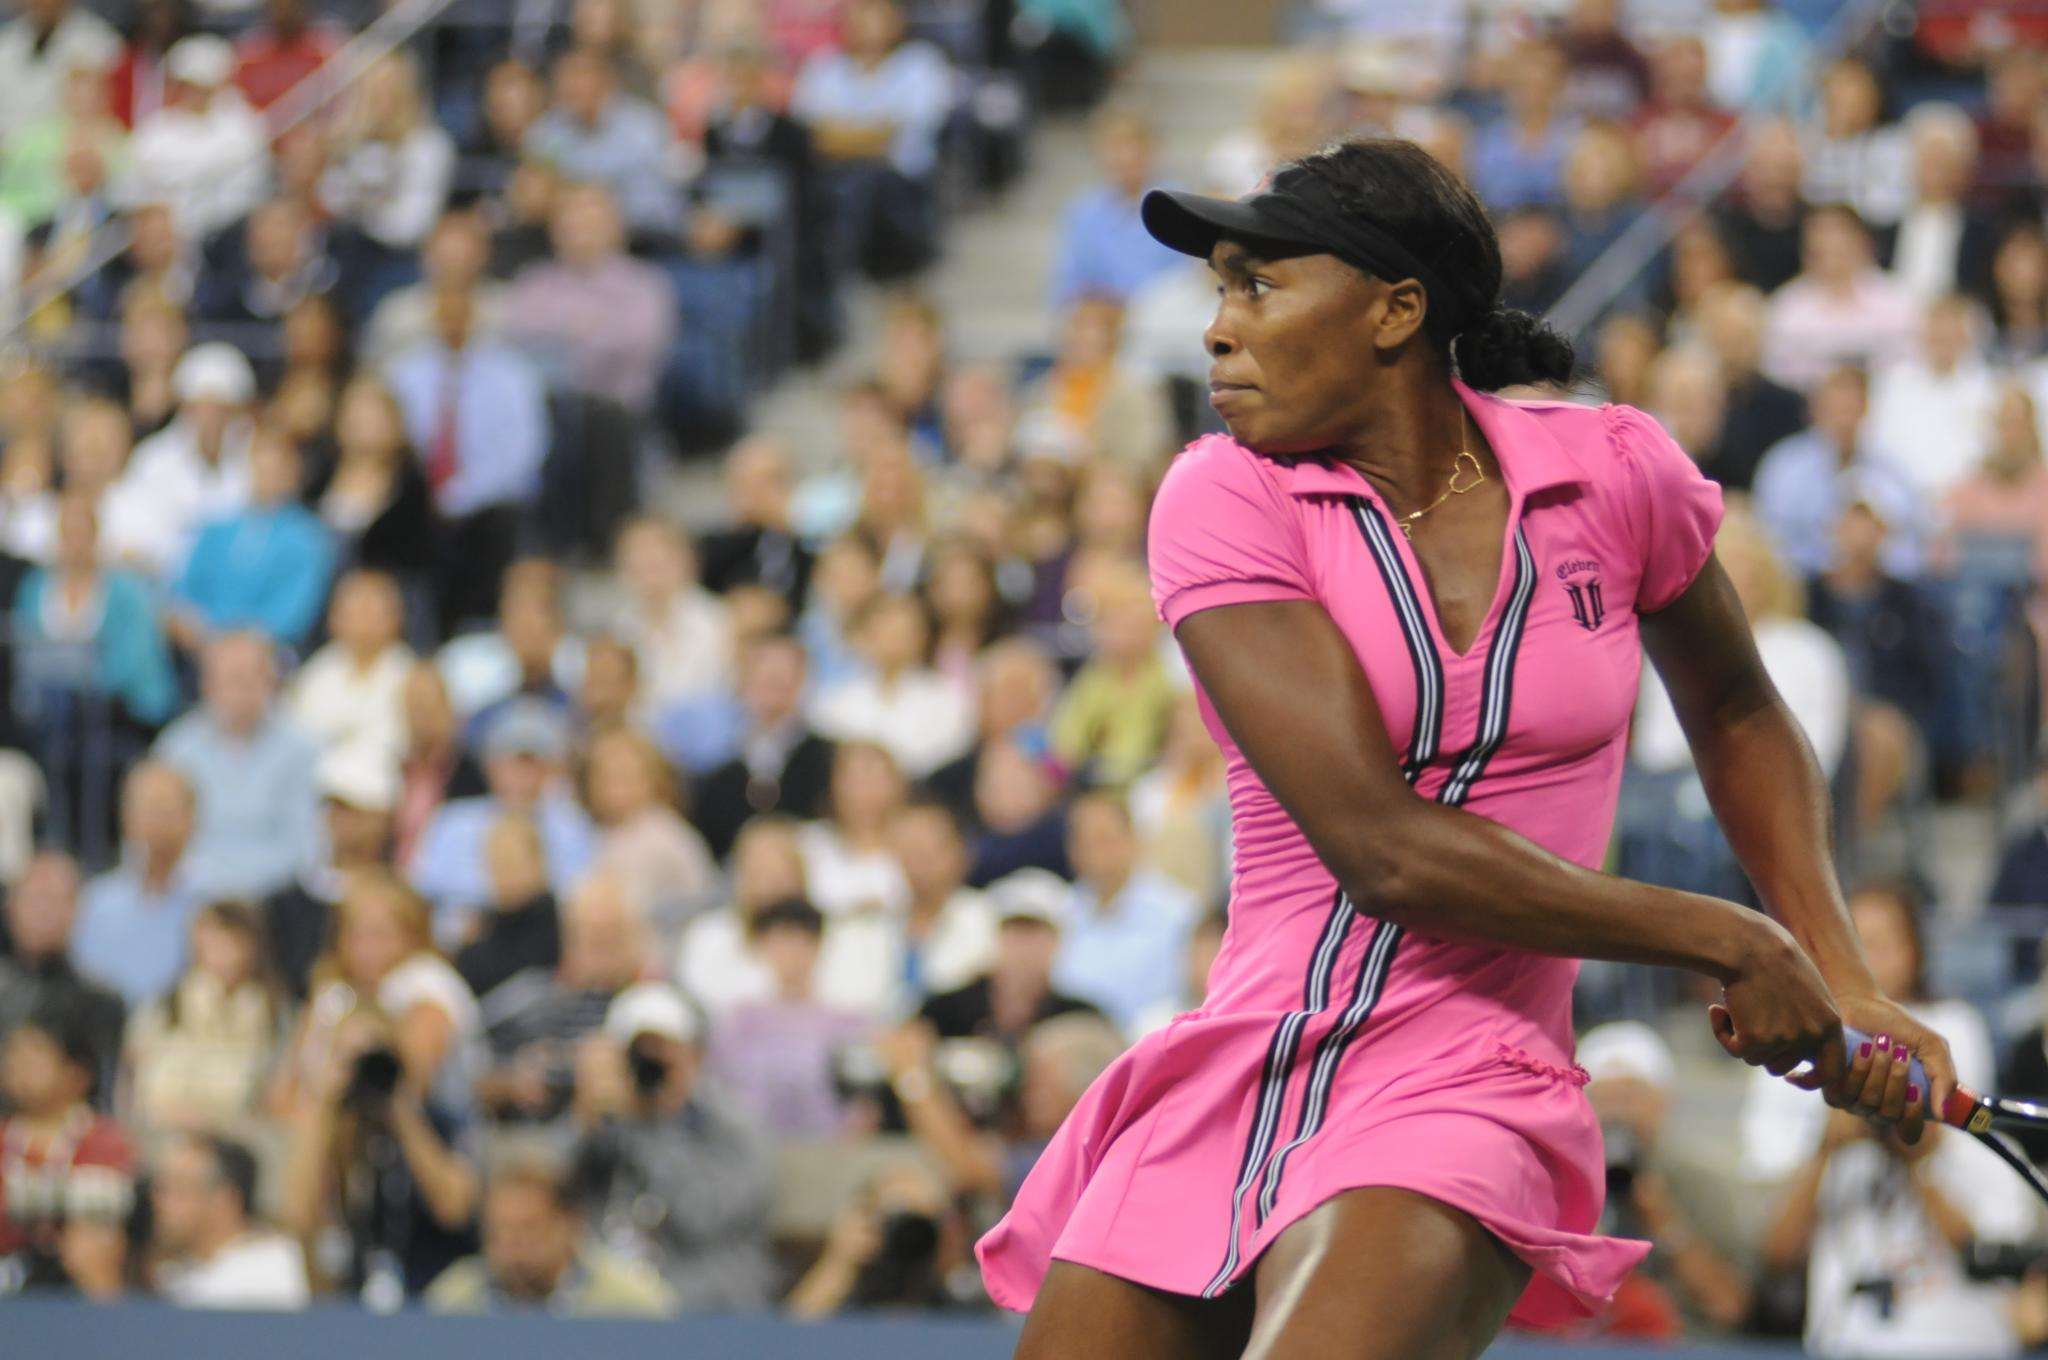 This is a photo of Venus Williams, the famous tennis player, executing a hard tennis swing.